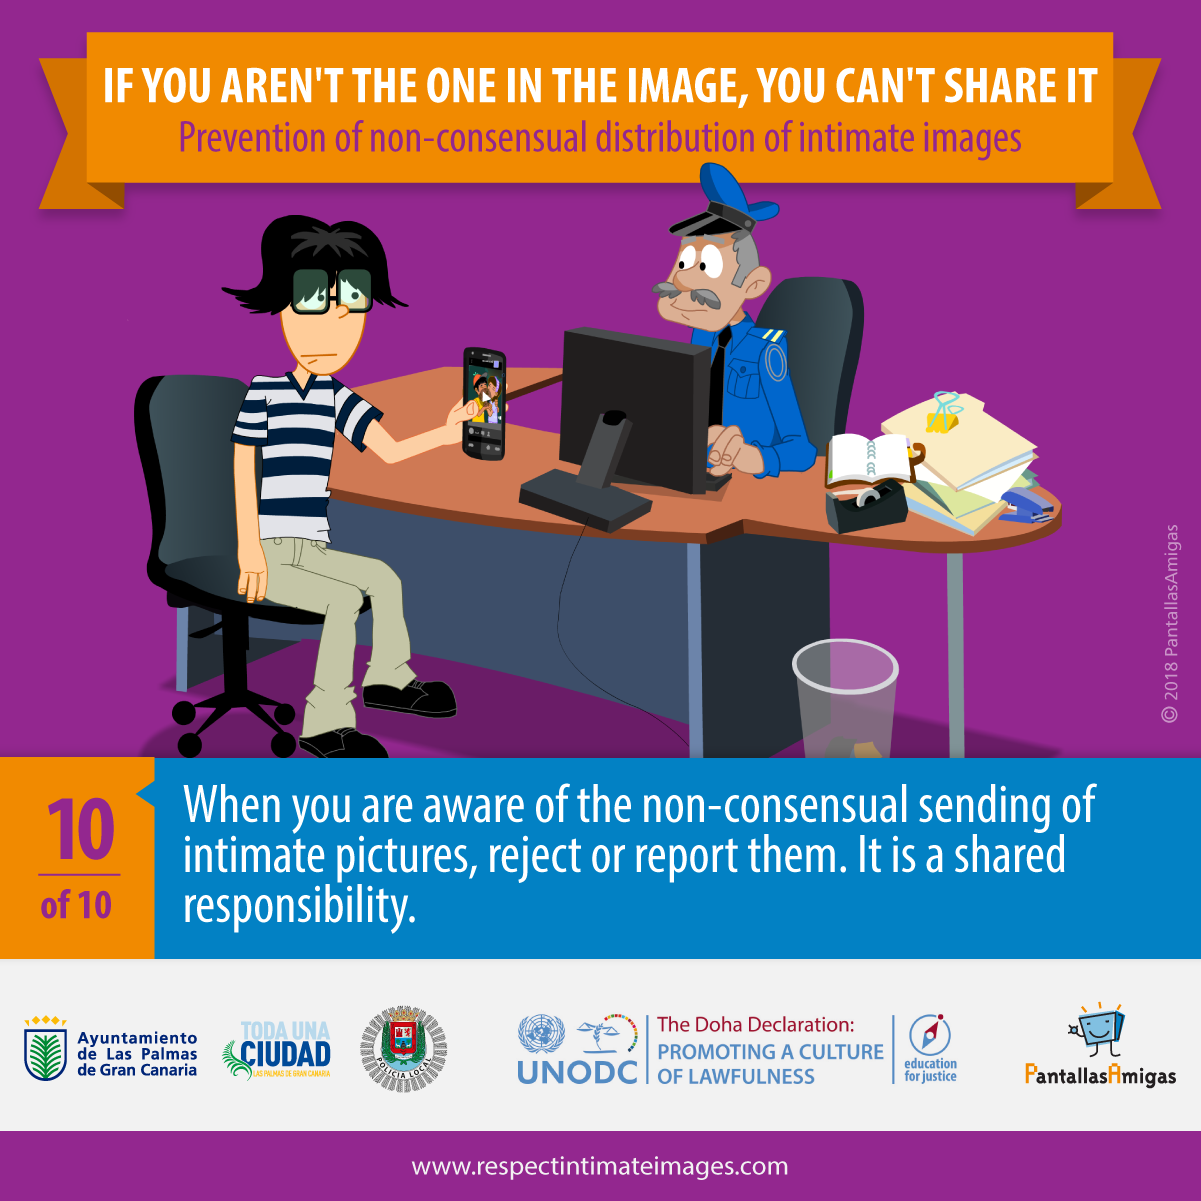 When you are aware of the non-consensual sending of intimate pictures, reject or report them. It is a shared responsibility.